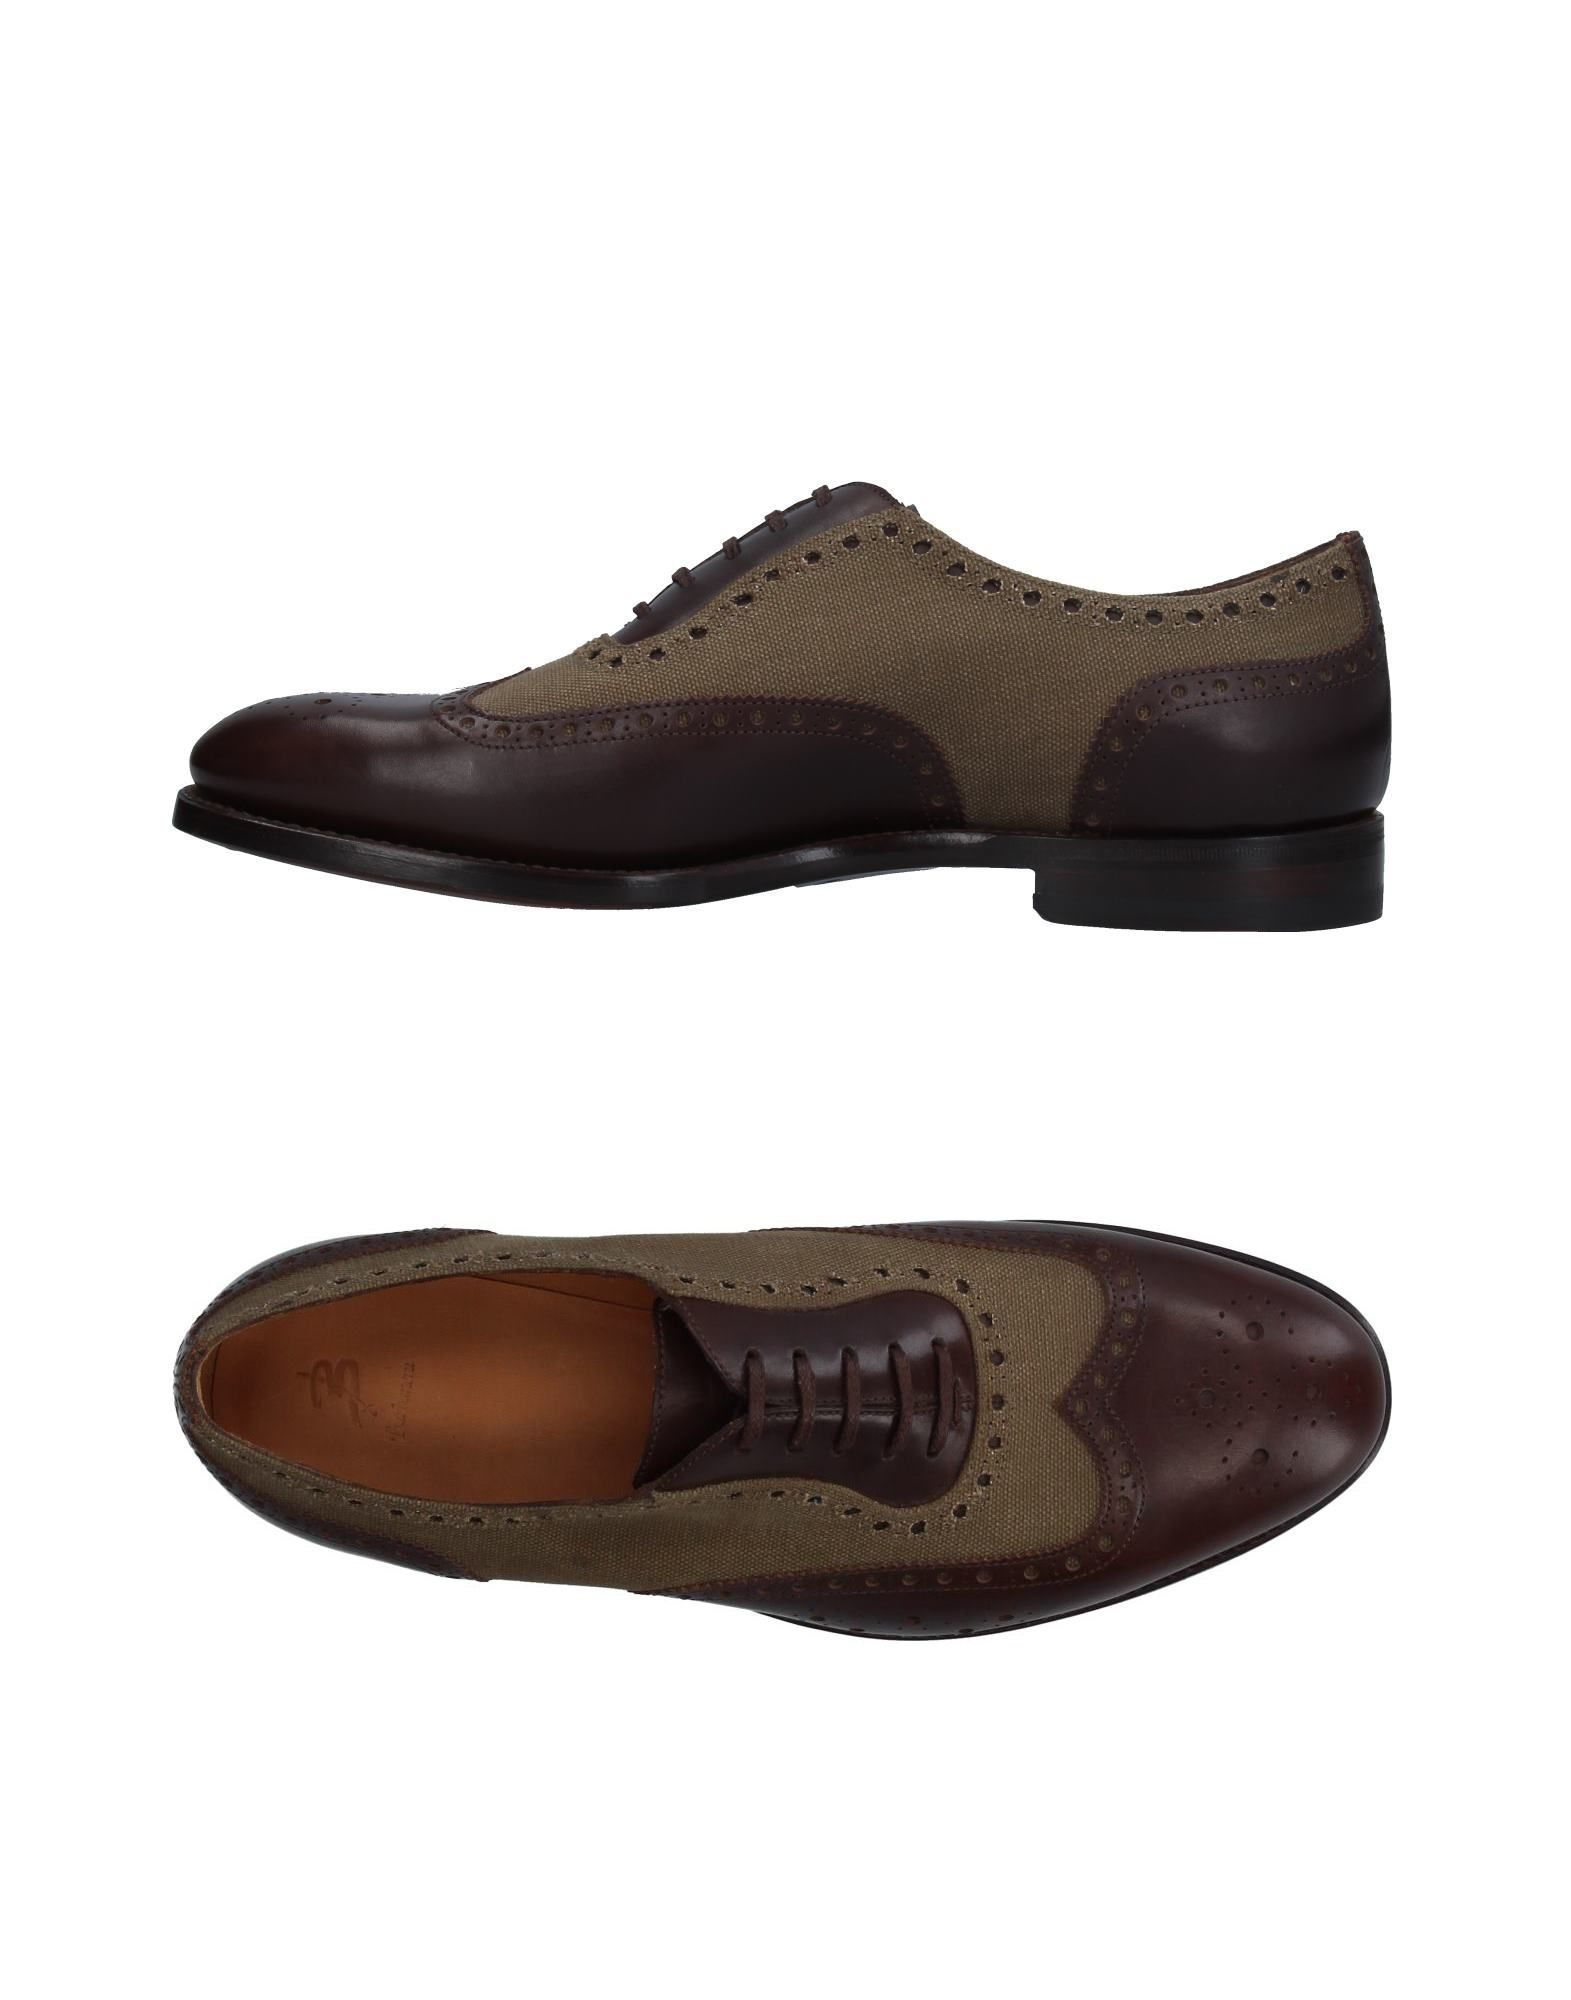 BARBANERA Laced Shoes in Dark Brown